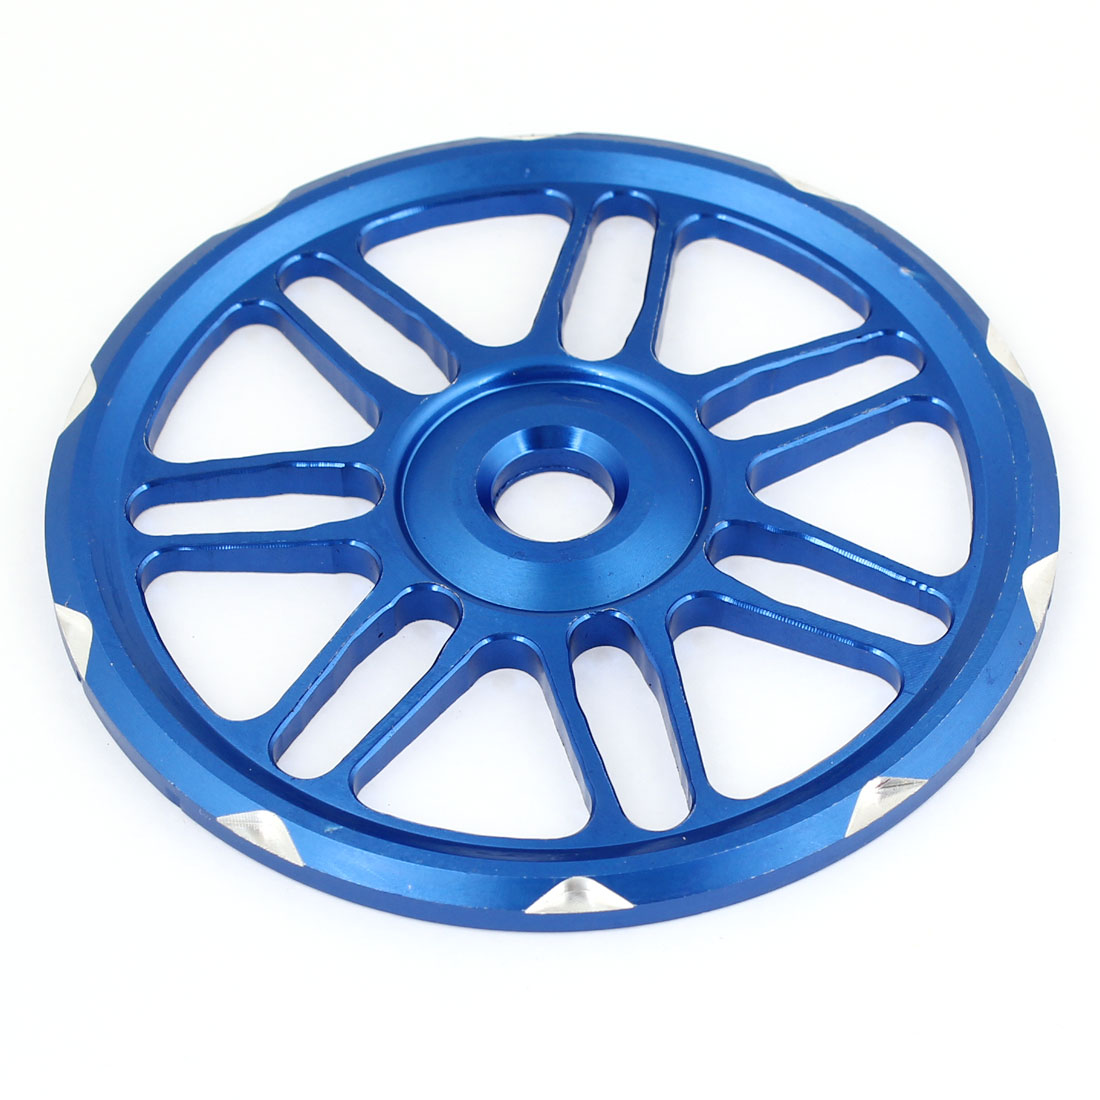 Motorcycle Blue Metal Wheels Pattern Decorative Fan Cover